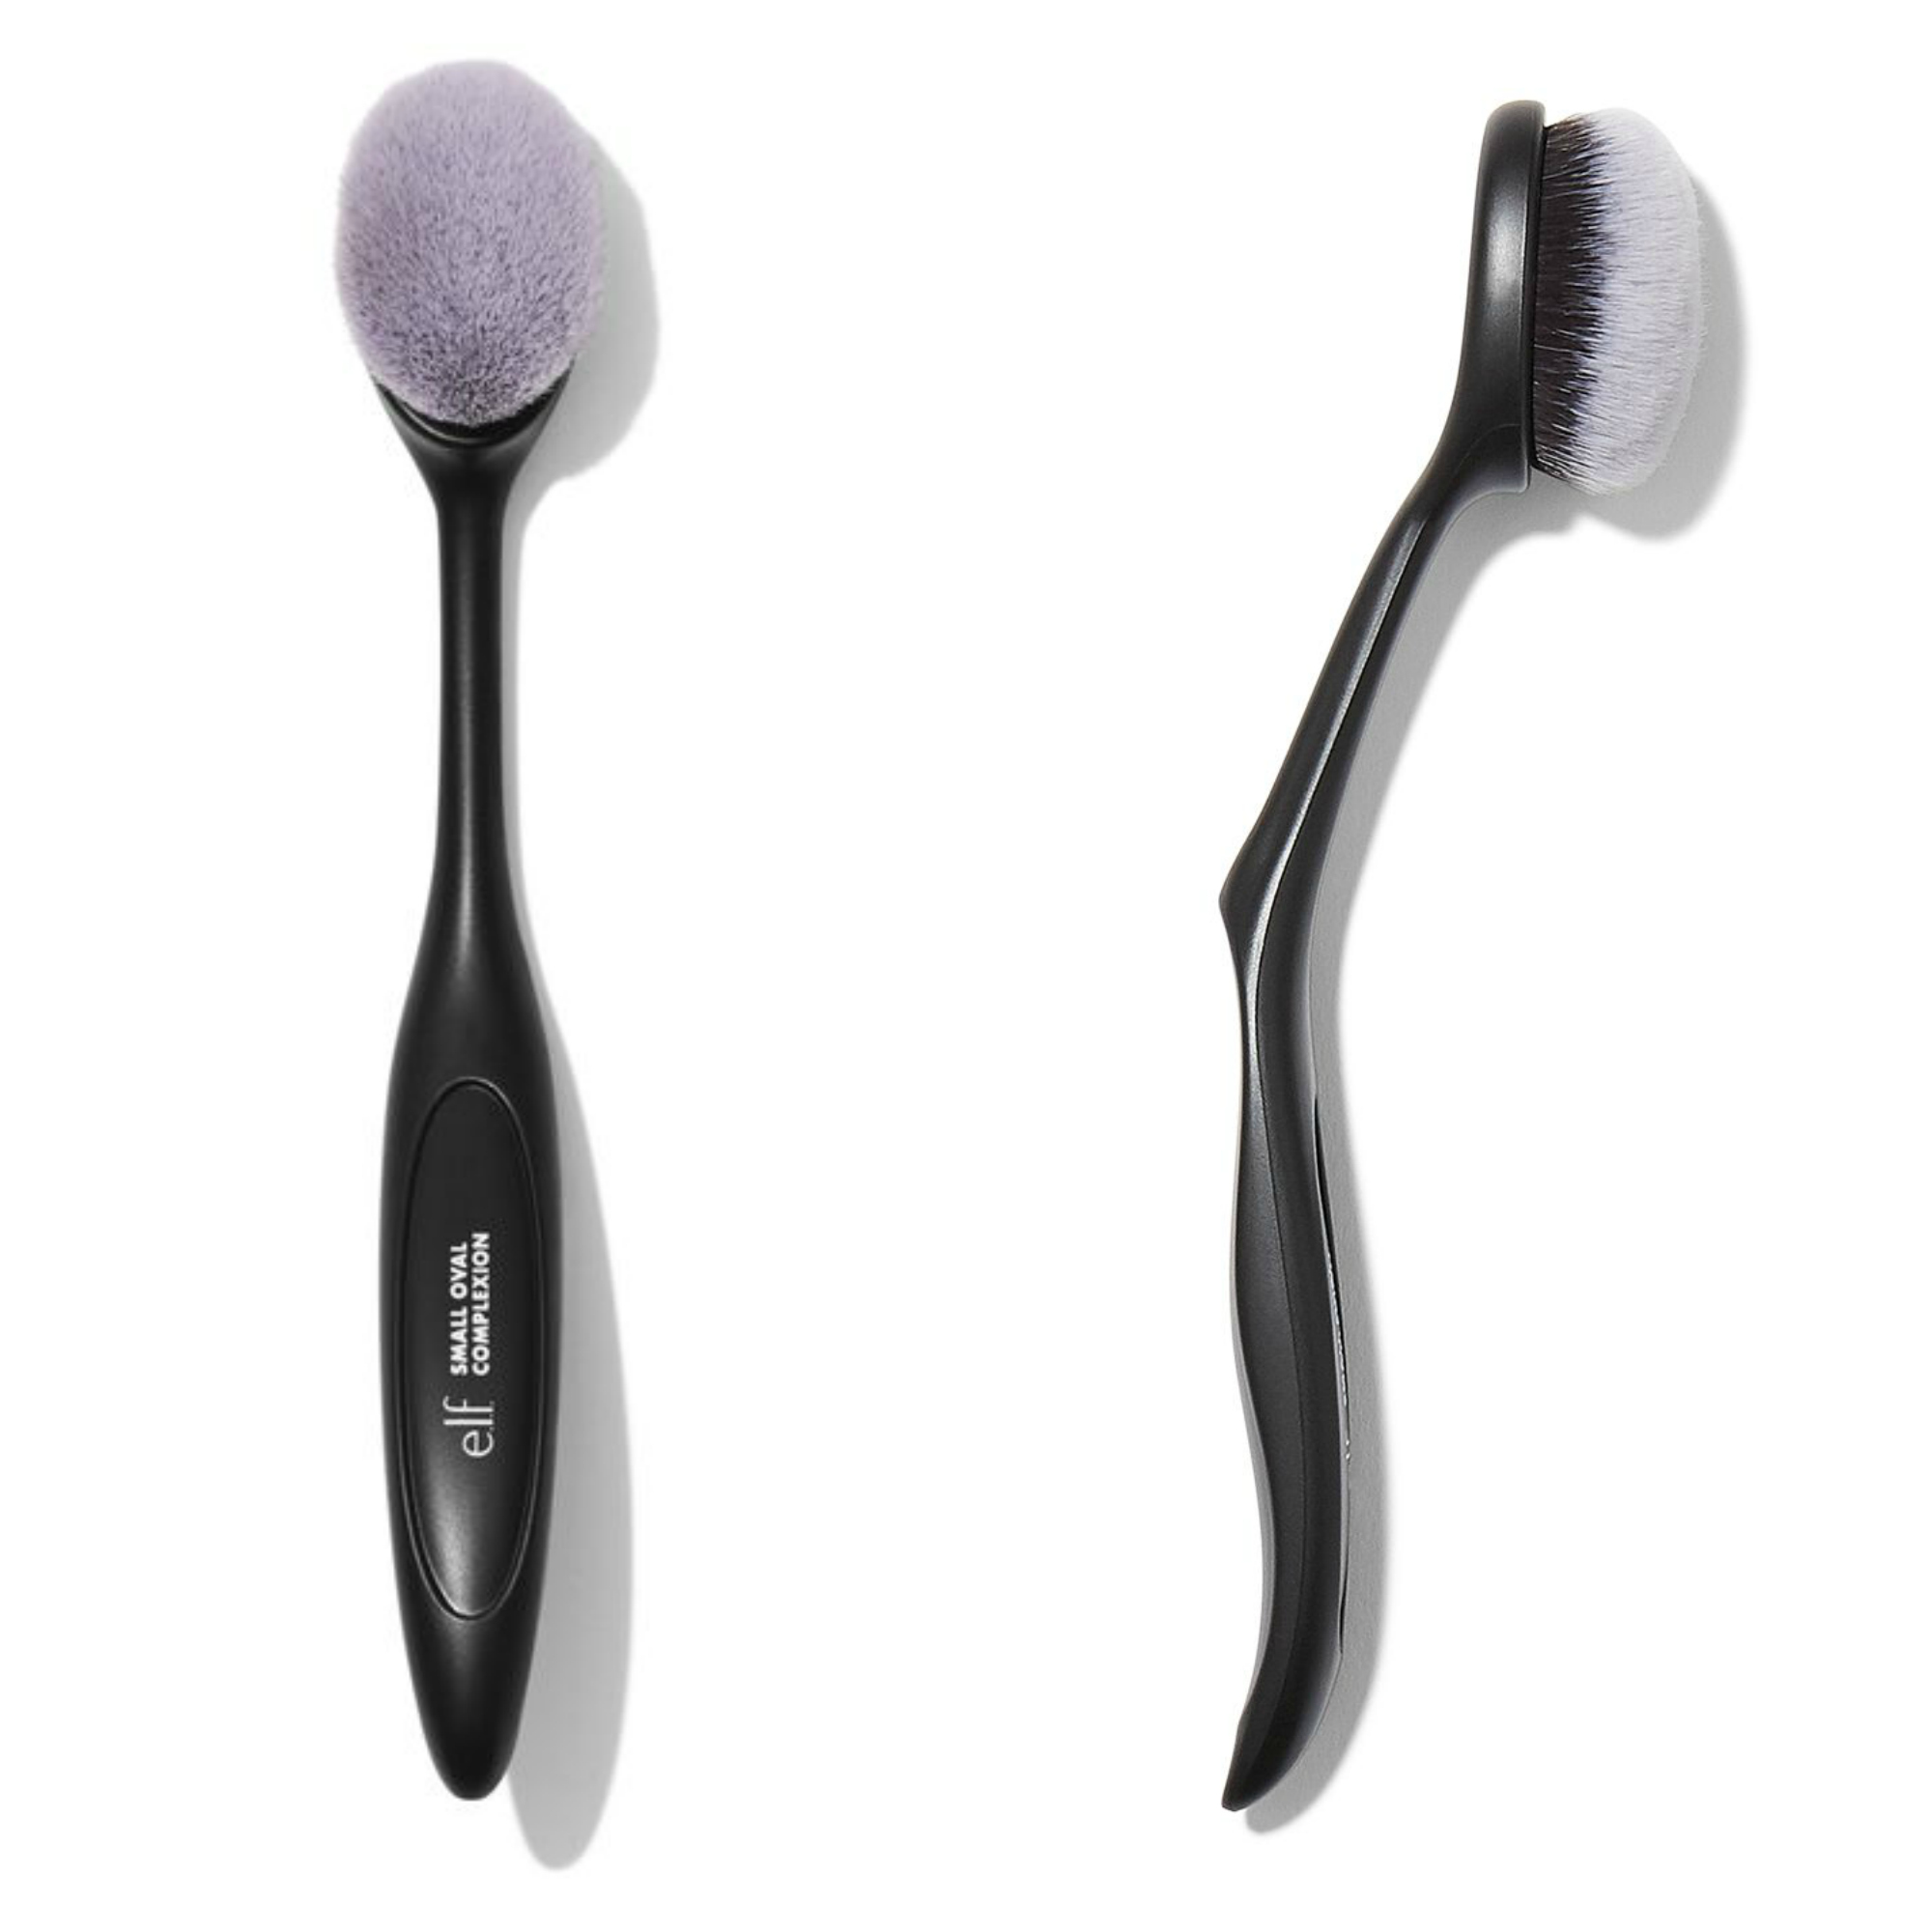 ELF Oval Complexion Brush Collection